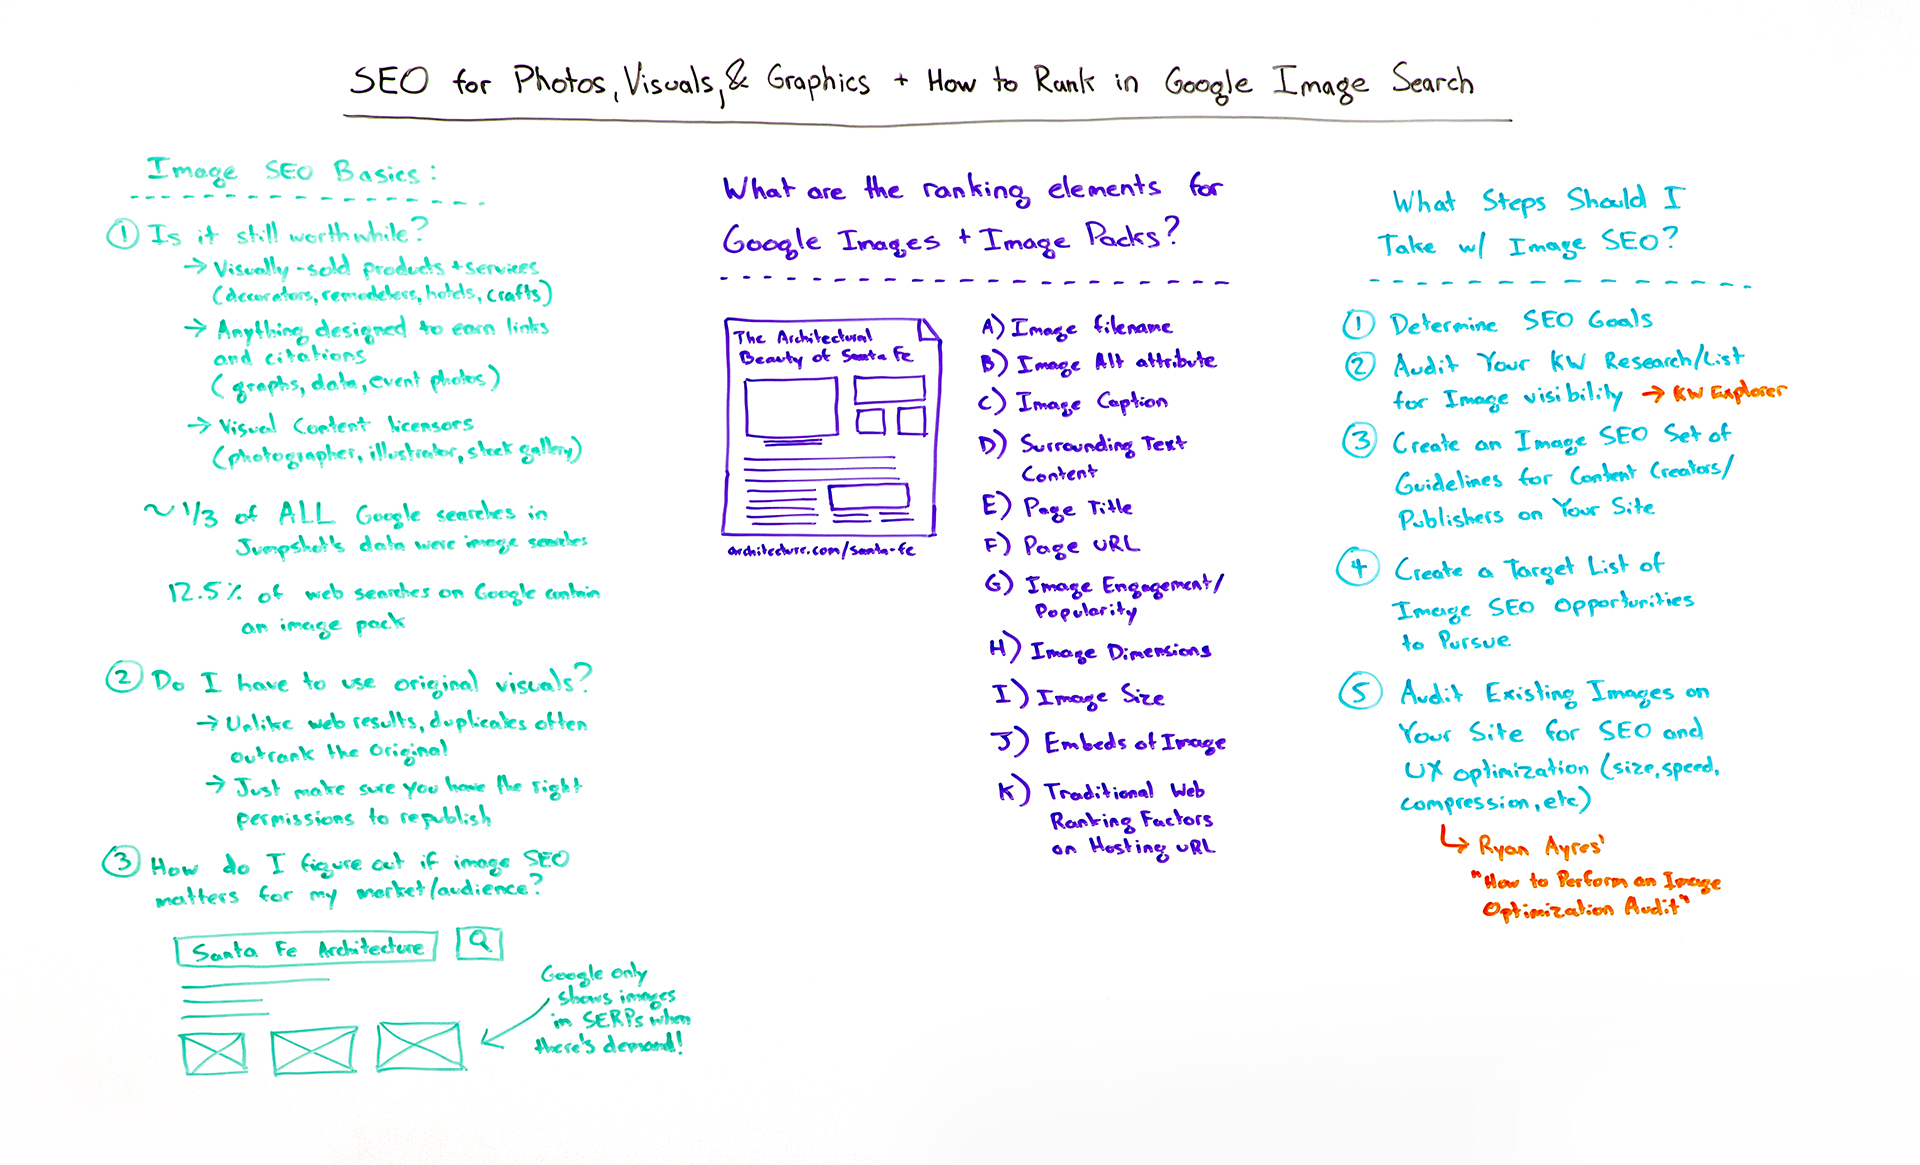 https://moz.com/blog/seo-photos-visuals-graphics-whiteboard-friday